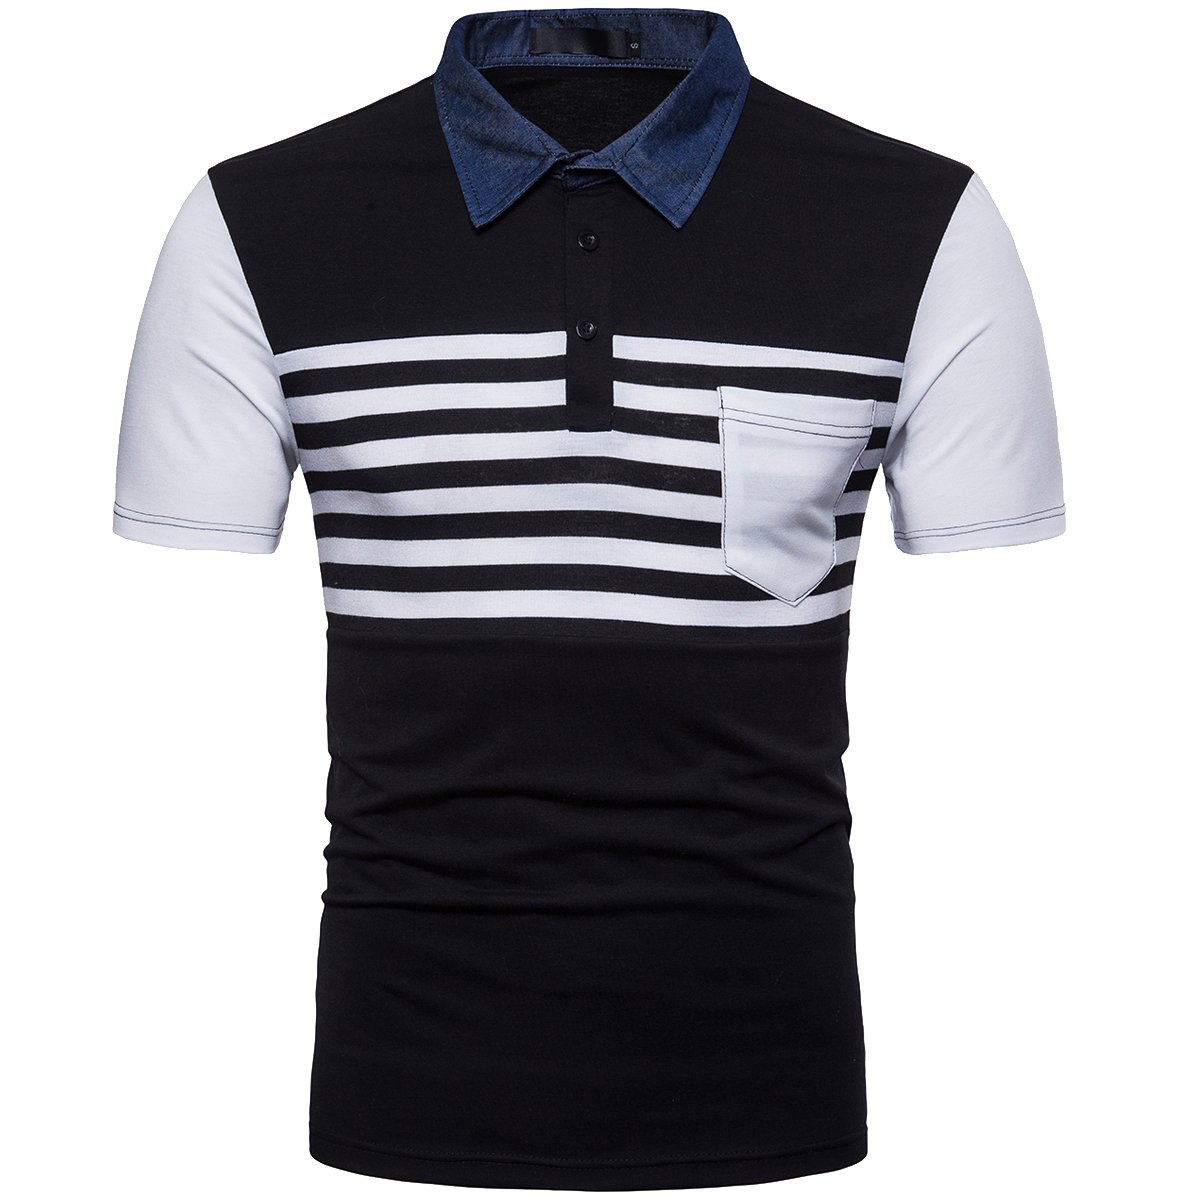 Cottory Mens Casual Slim Fit Striped Polo Tee Shirt with Pocket